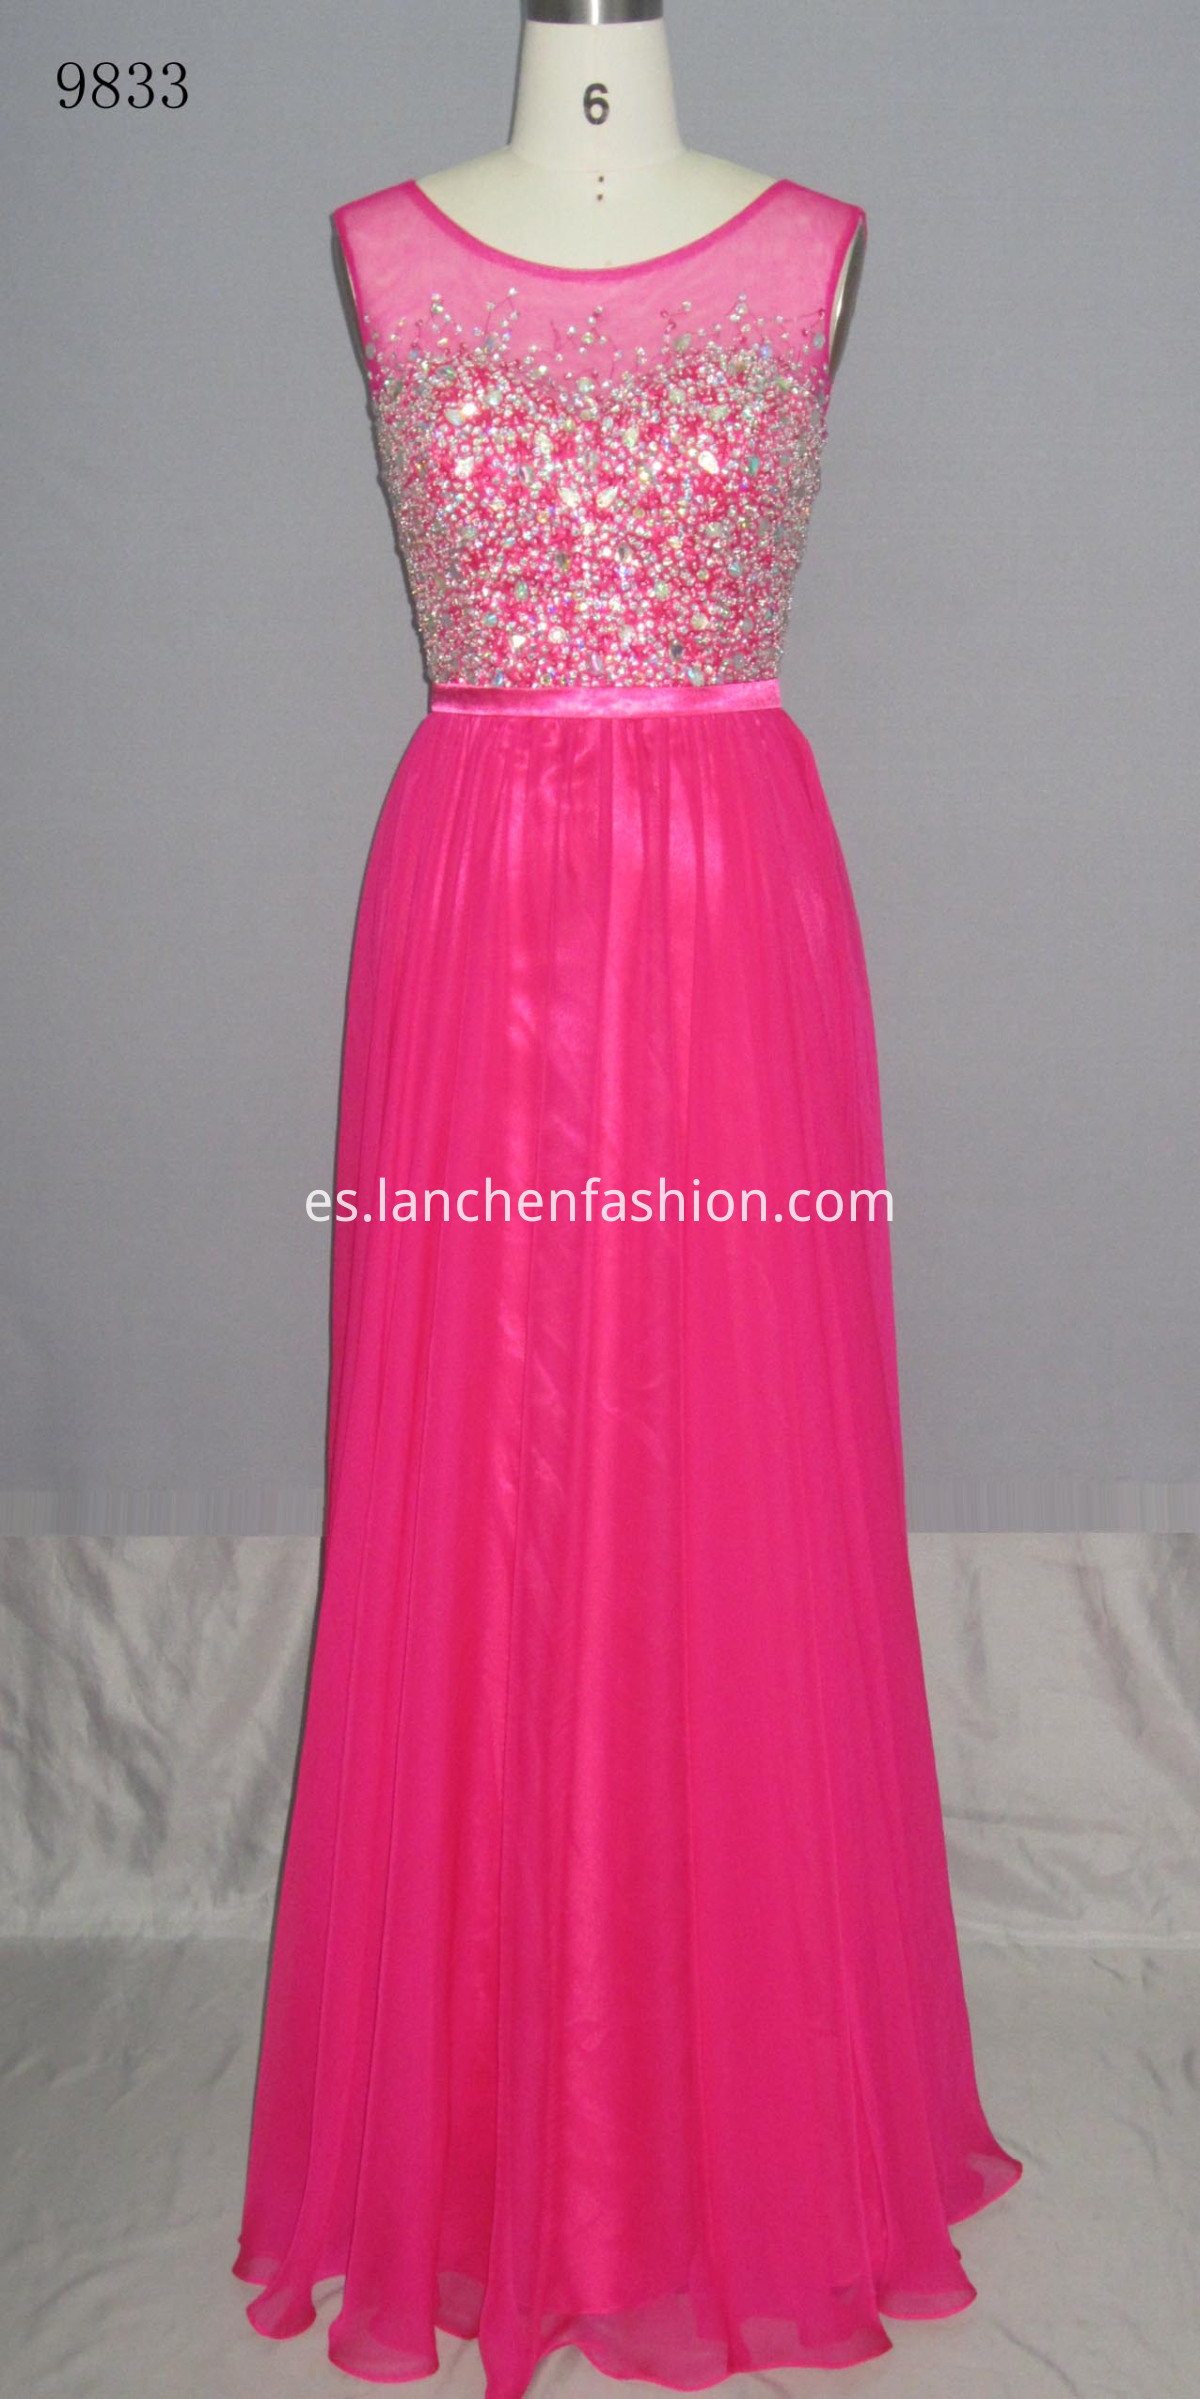 Lace Sleeveless Dress FUSHIA